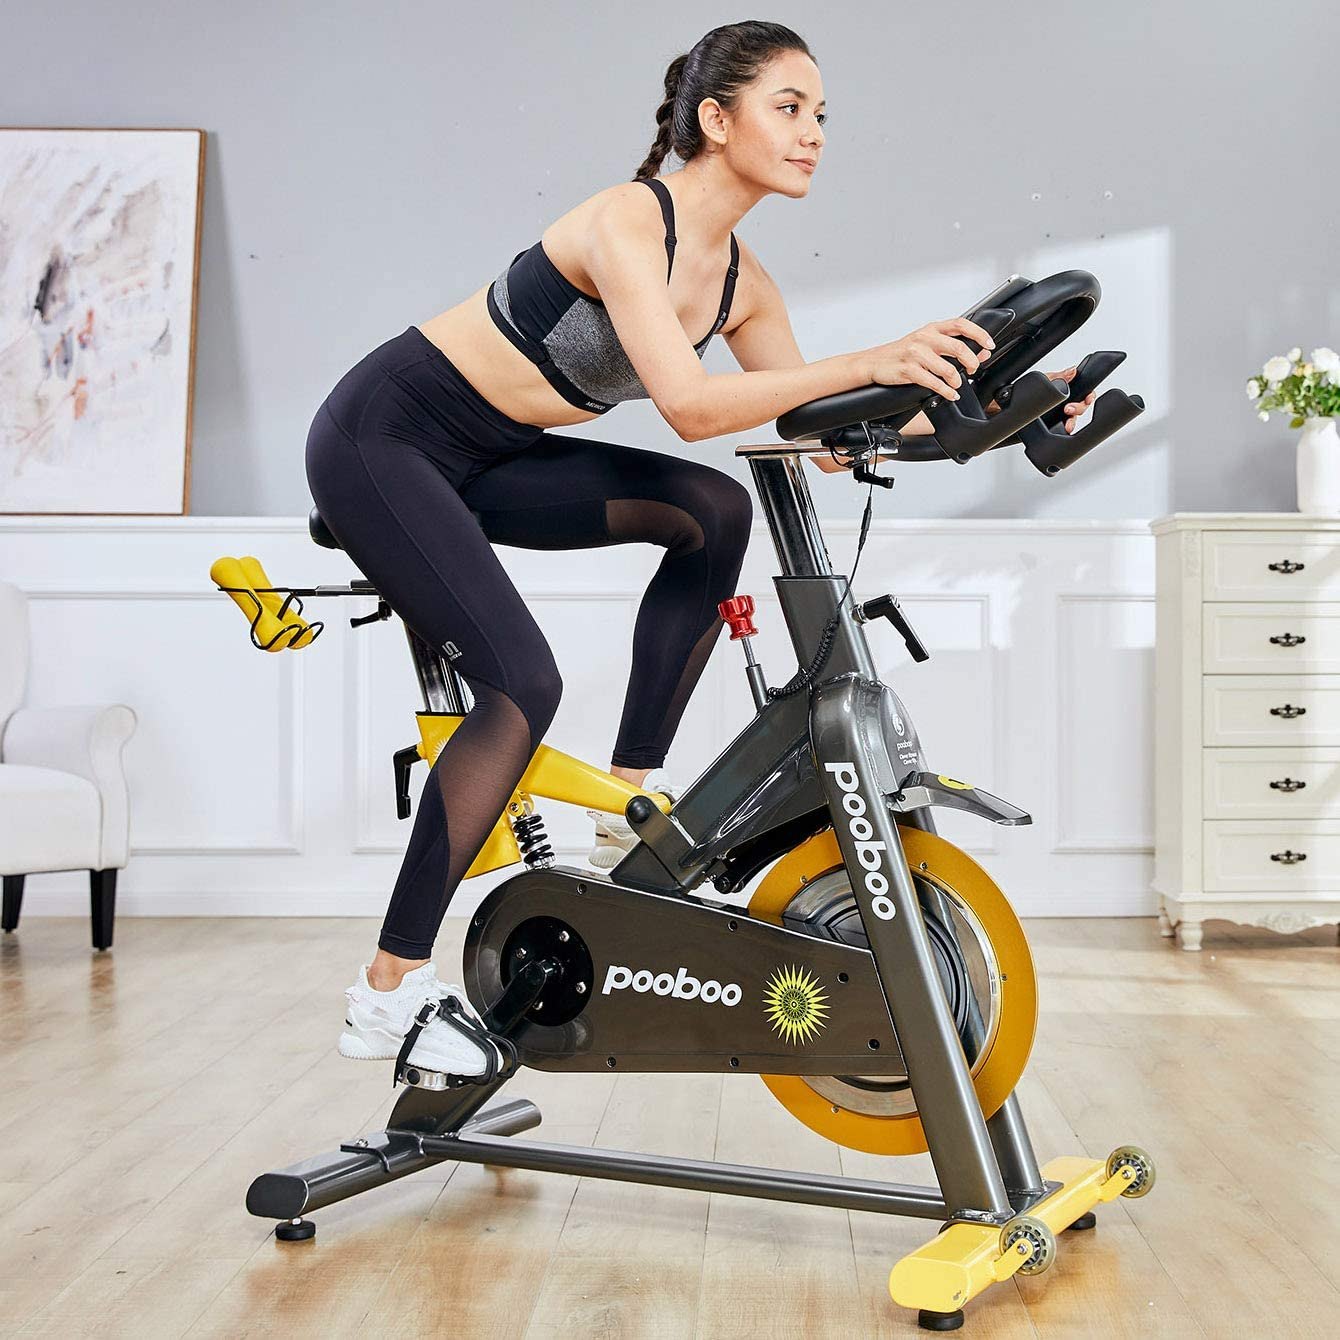 L NOW Indoor Exercise Bike Indoor Cycling Stationary Bike,Magnetic Resistance with 35 Lb Flywheel Belt Drive LCD Monitor Heart Rate Commercial Standard for Home Cardio Workout D501